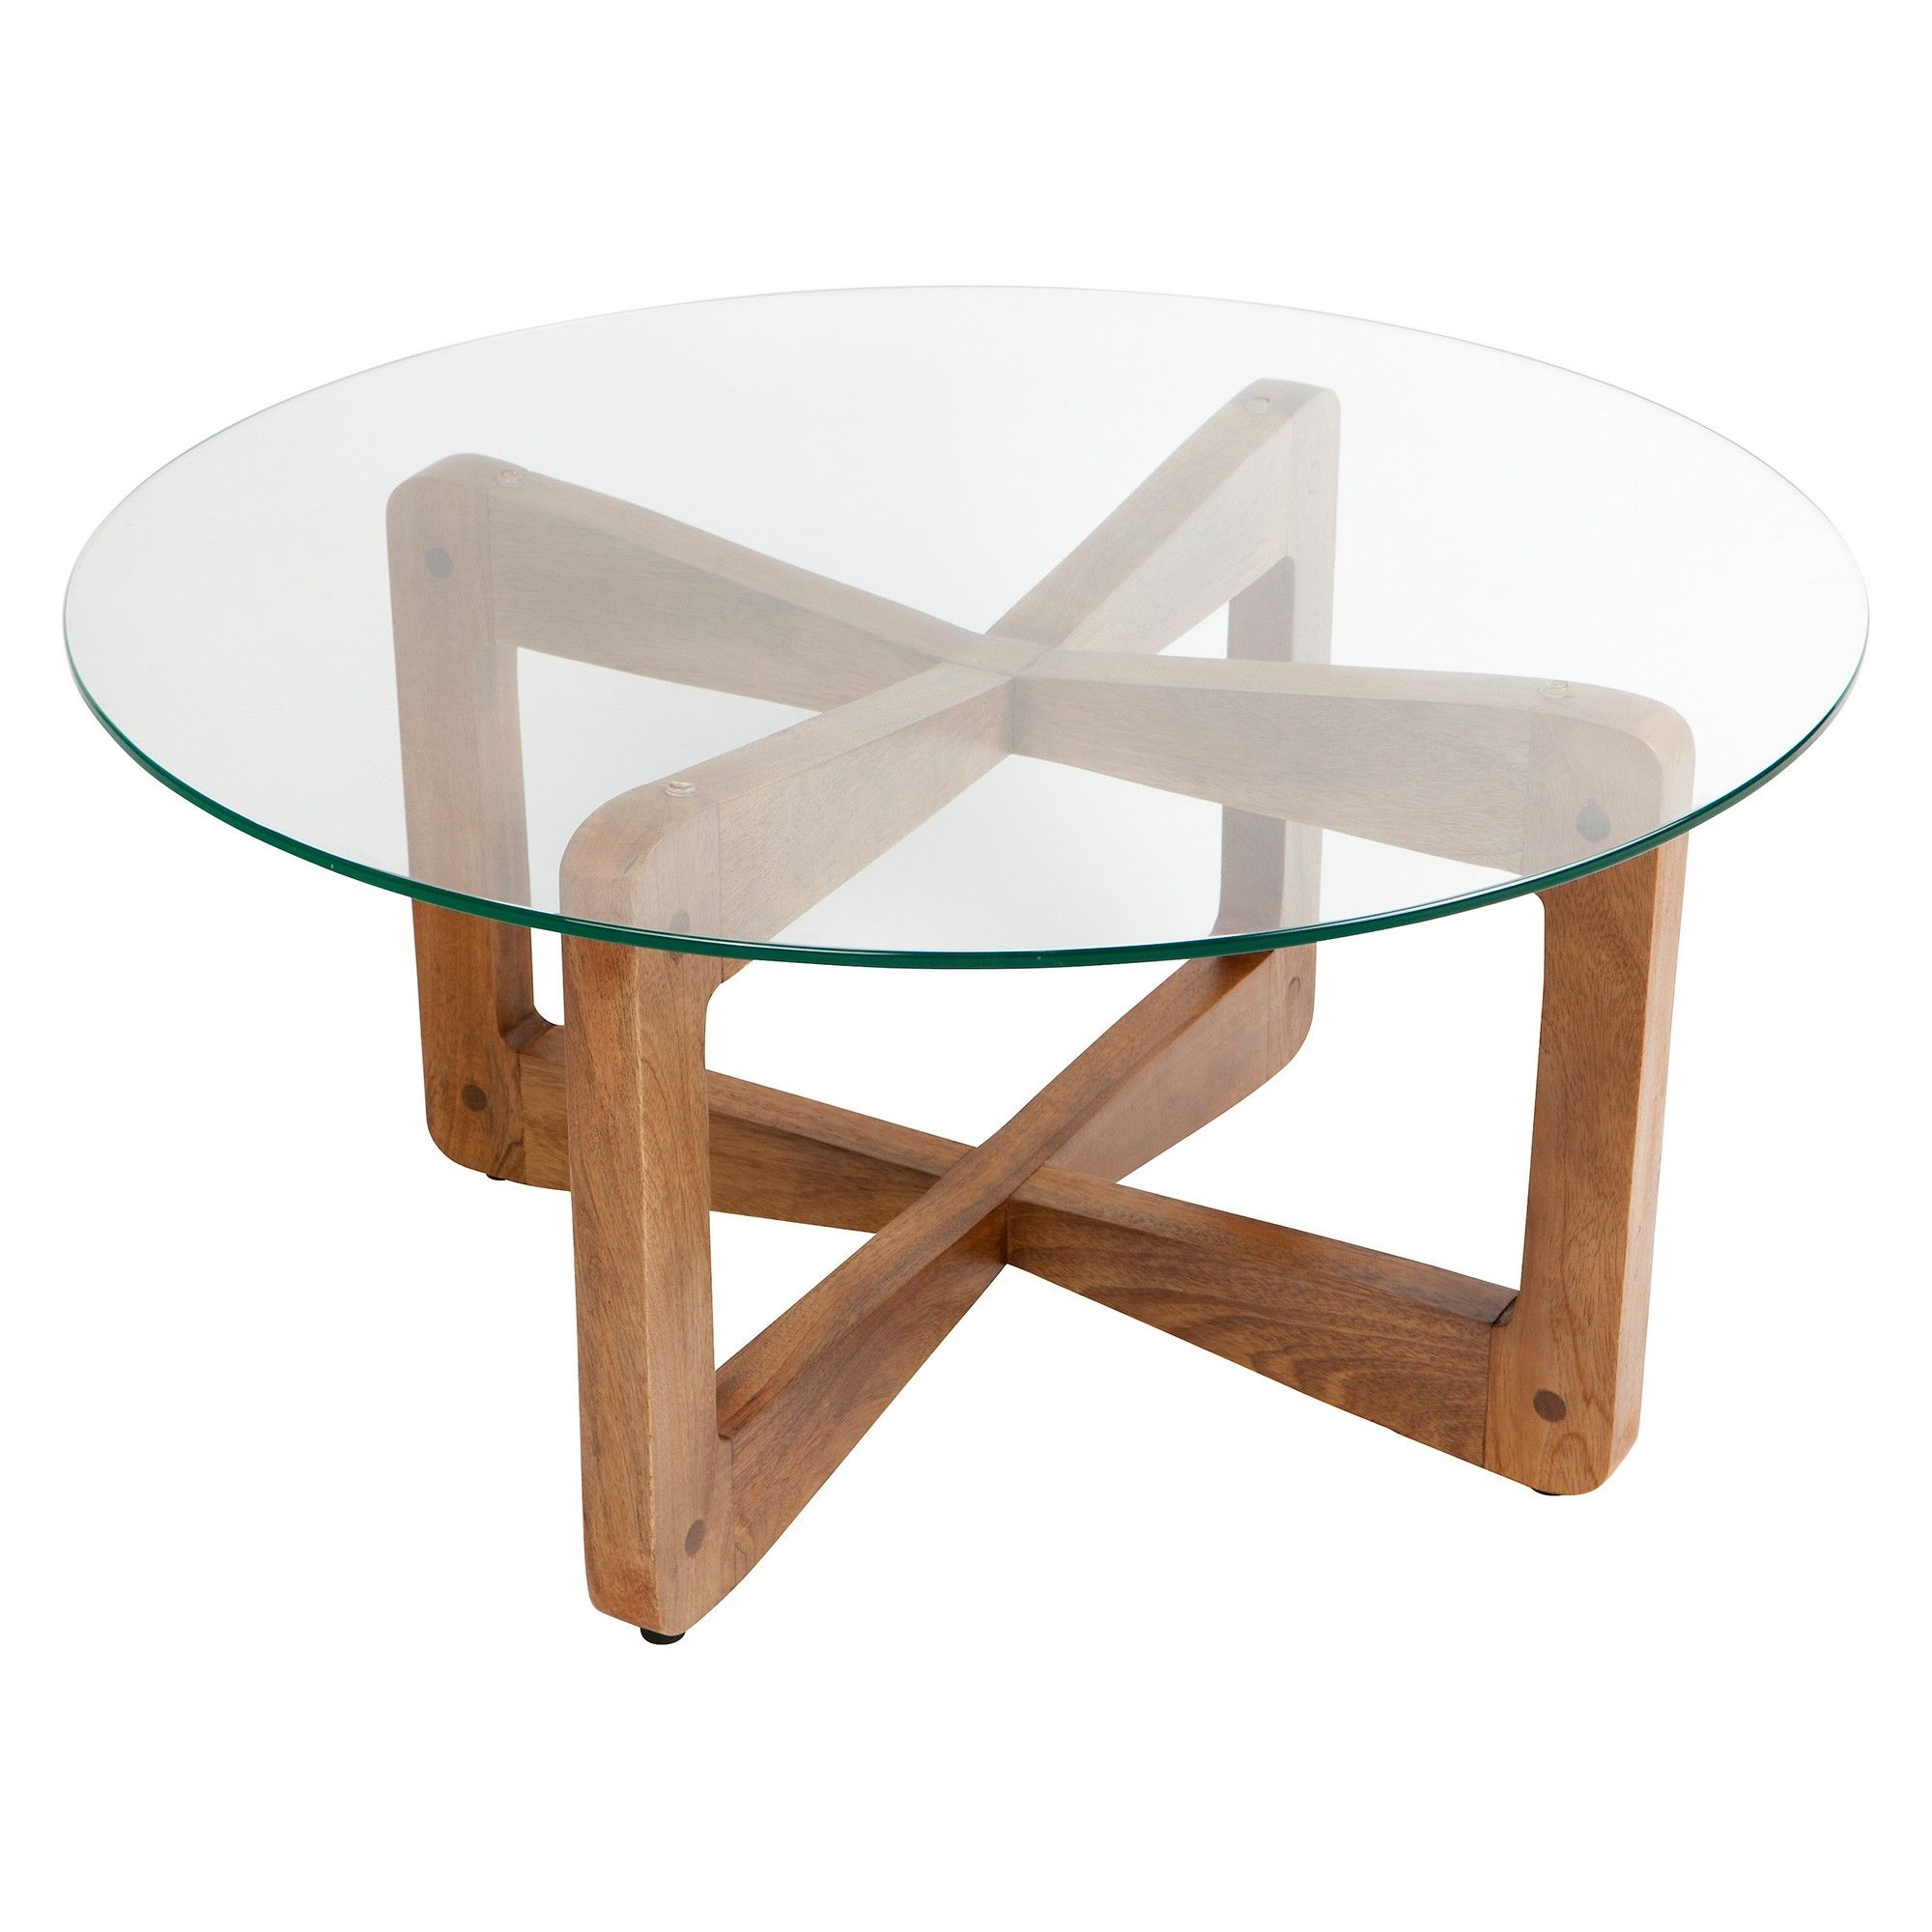 Lisbon Glass Teak Timber Round Coffee Table 80cm Pe De Mesa Redonda Pe De Mesa Mesa Redonda